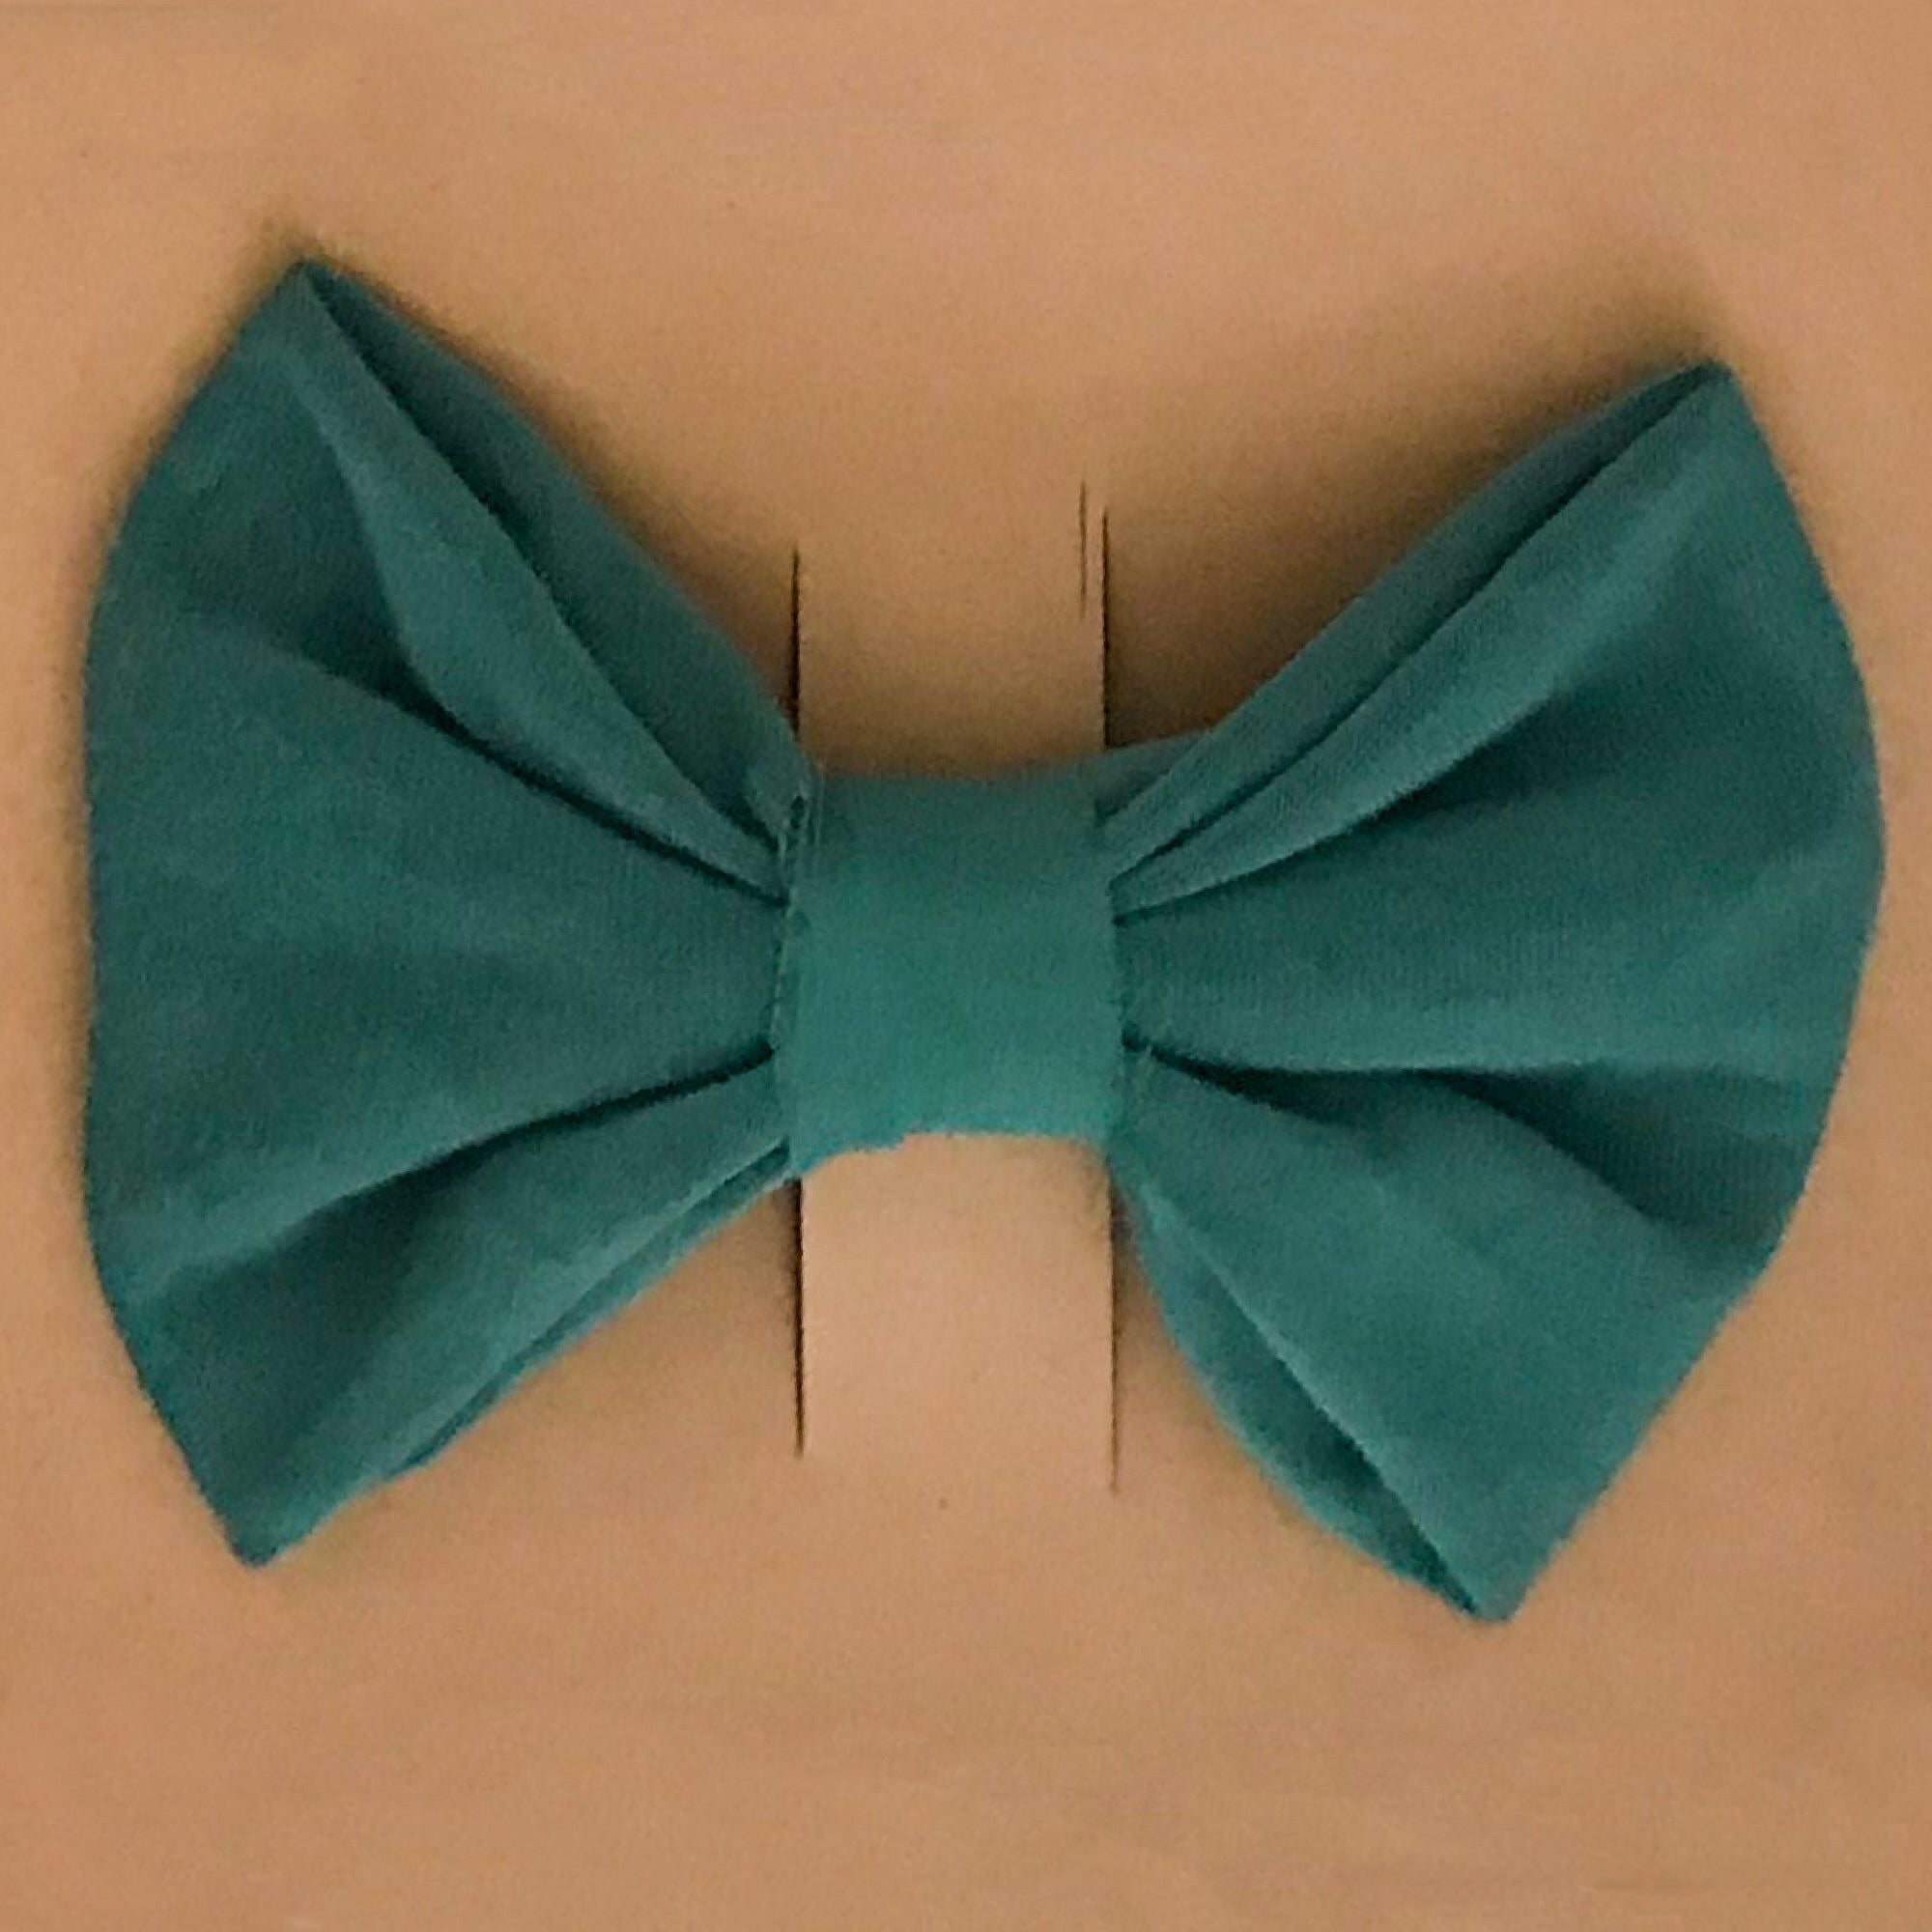 Teal VBABY Hair Bow